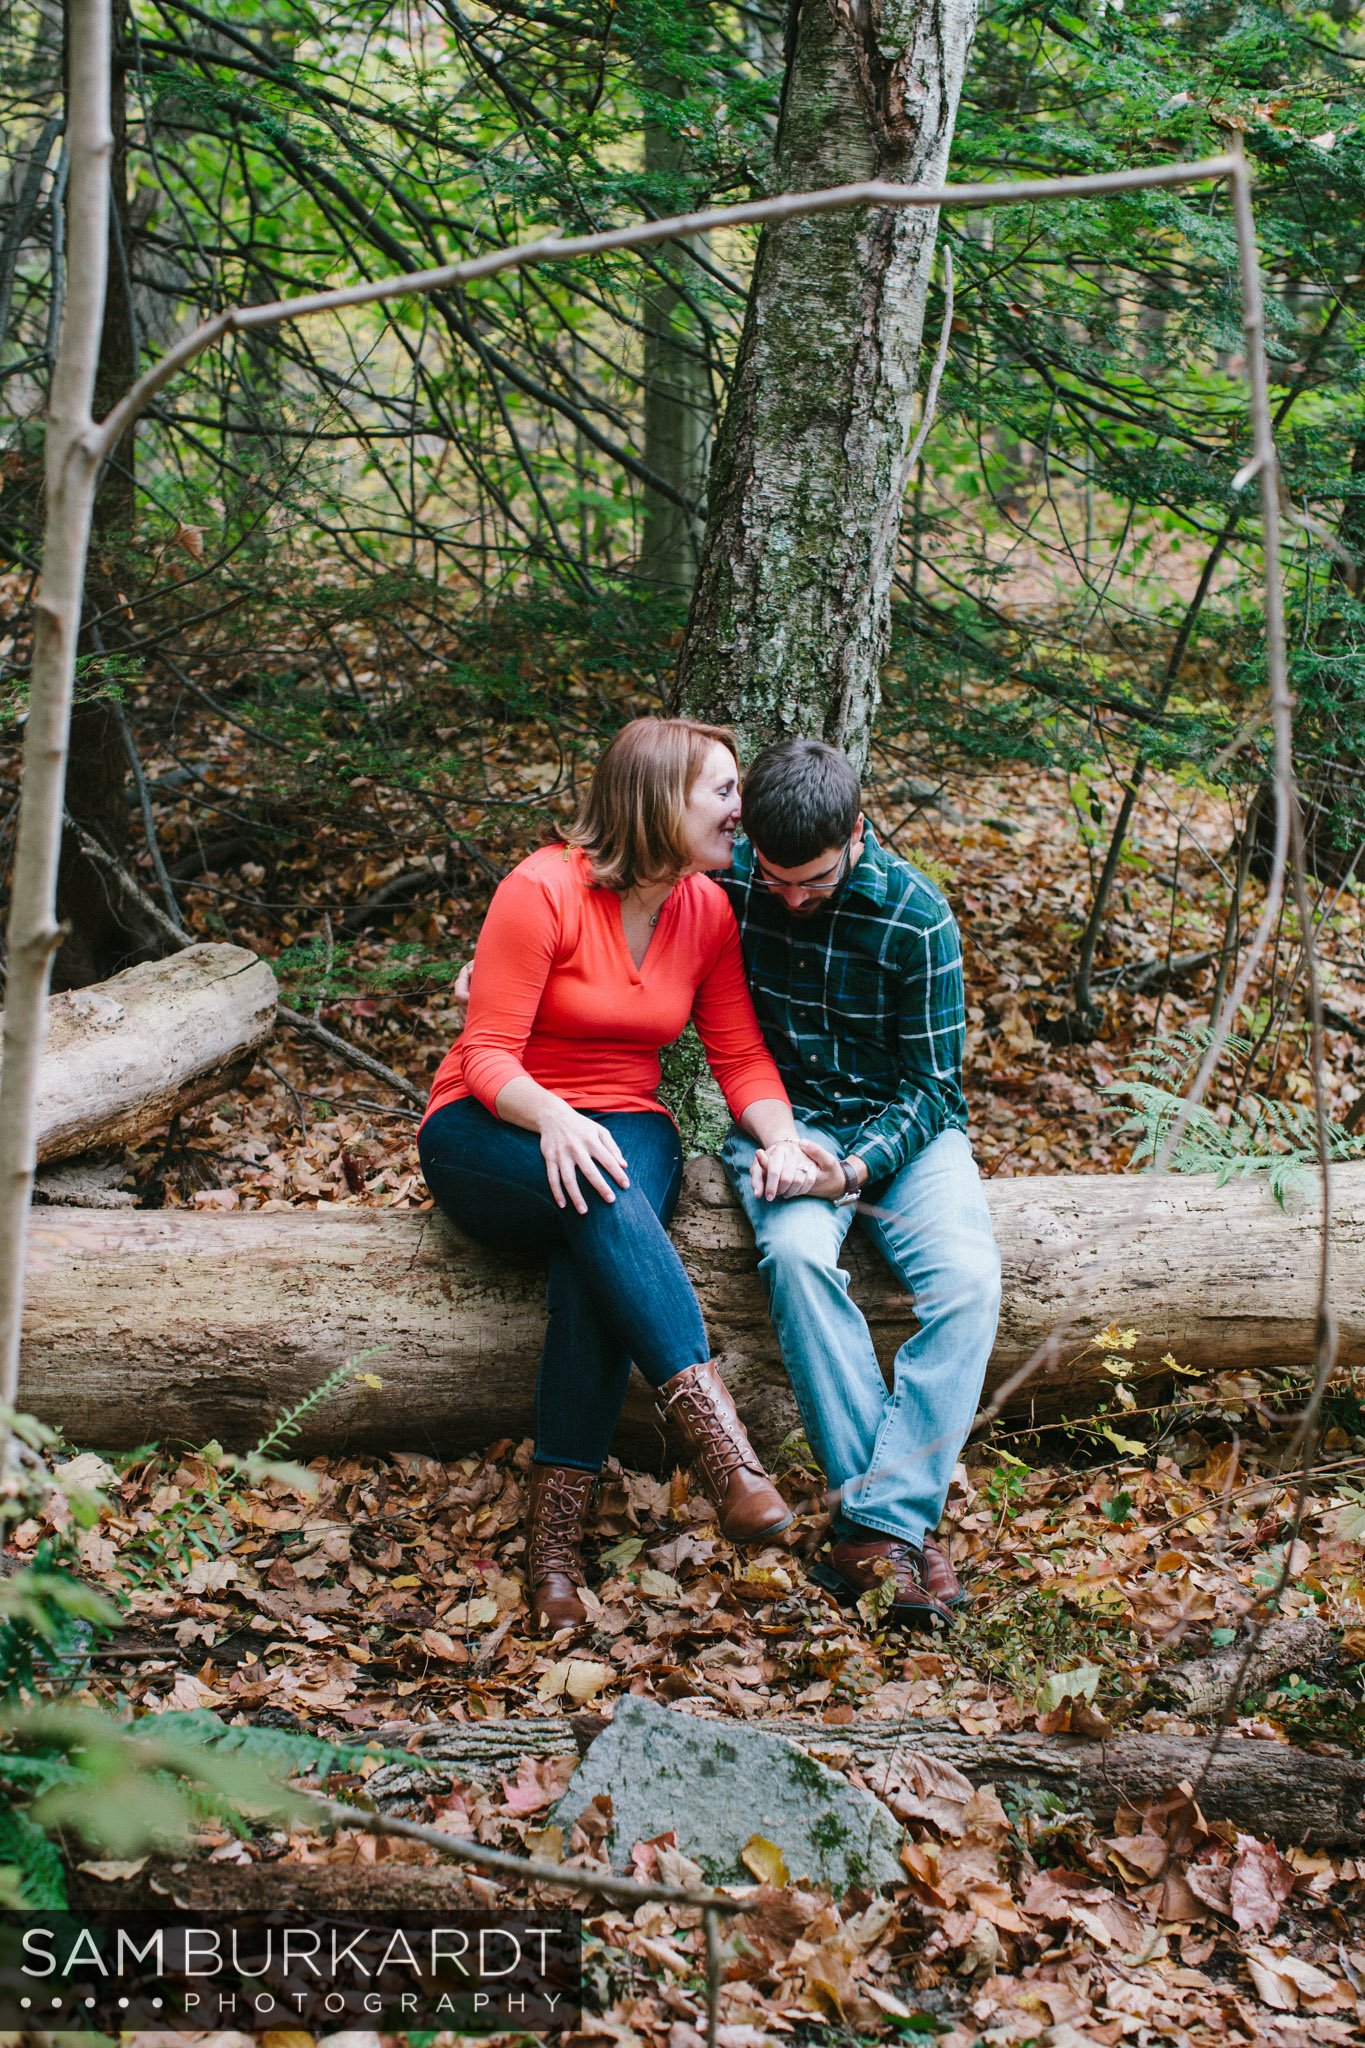 samburkardt-fall-engagement-connecticut-foliage-southford-falls-state-park_0016.jpg